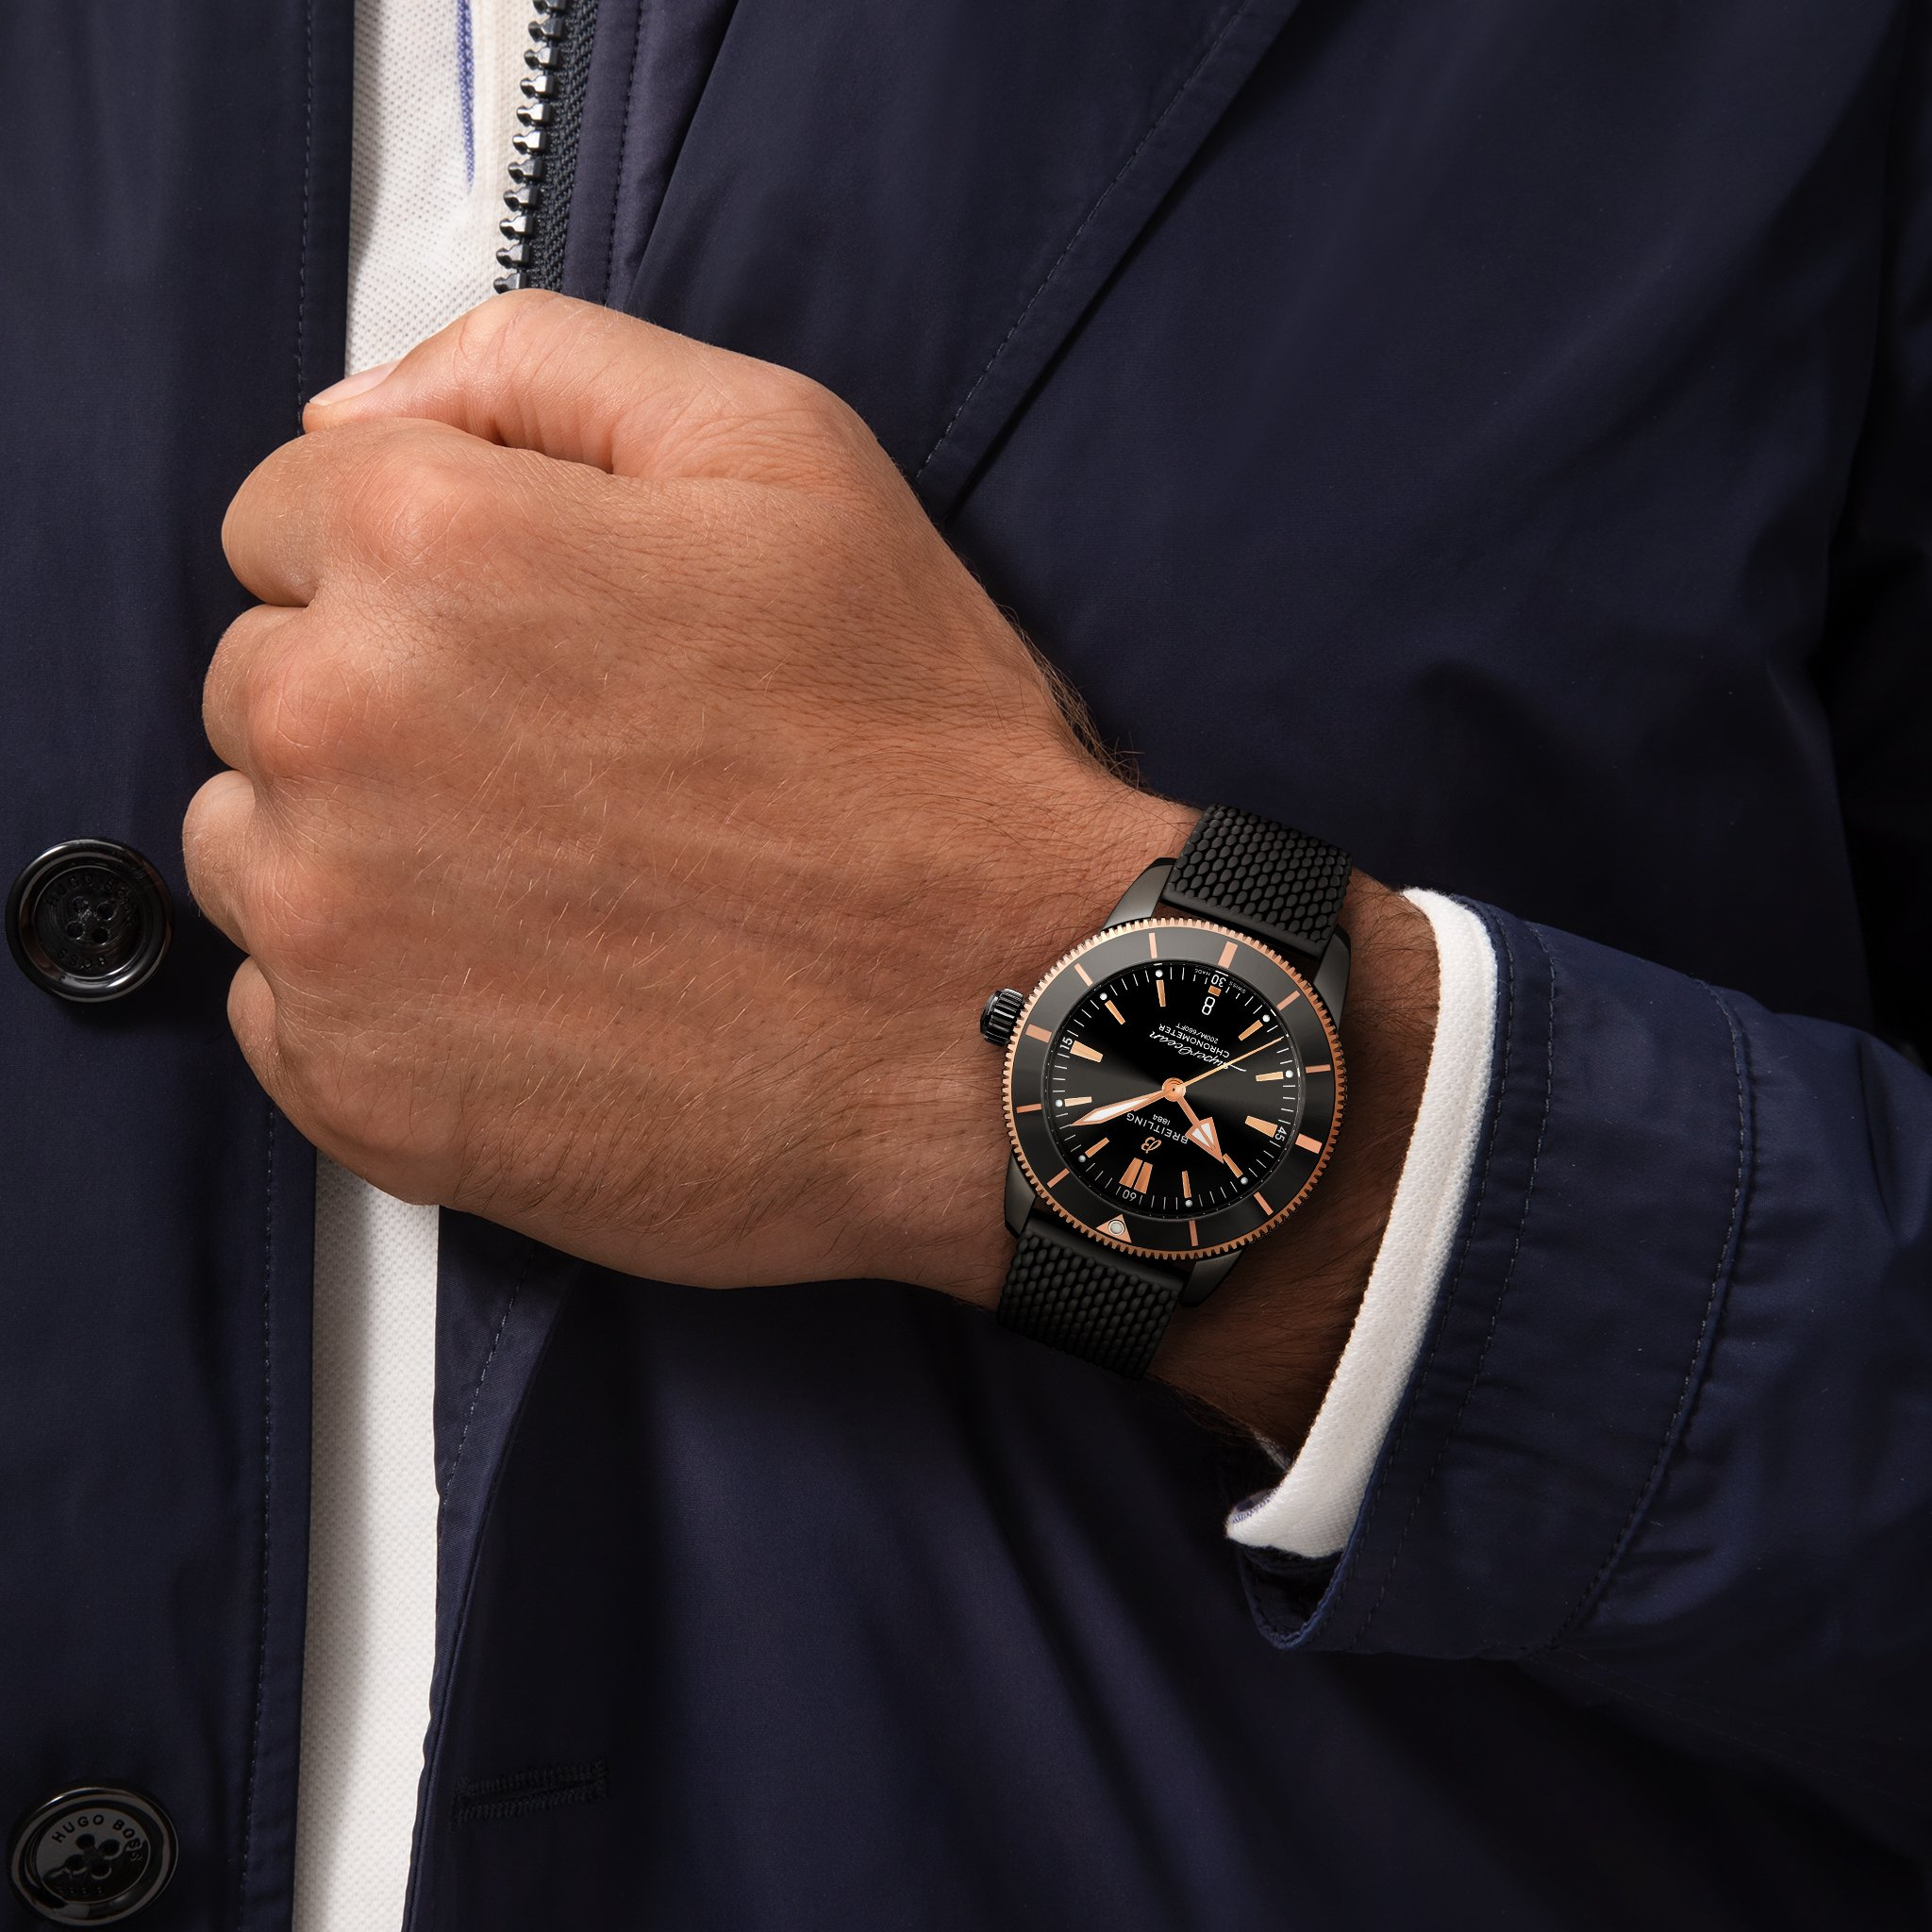 https://www.breitling.com/media/image/1/gallery_square/asset-version-19ba5ca2db/ub20303a1b1s1-superocean-heritage-b20-automatic-44-berverly-hills-limited-edition-on-wrist.jpg